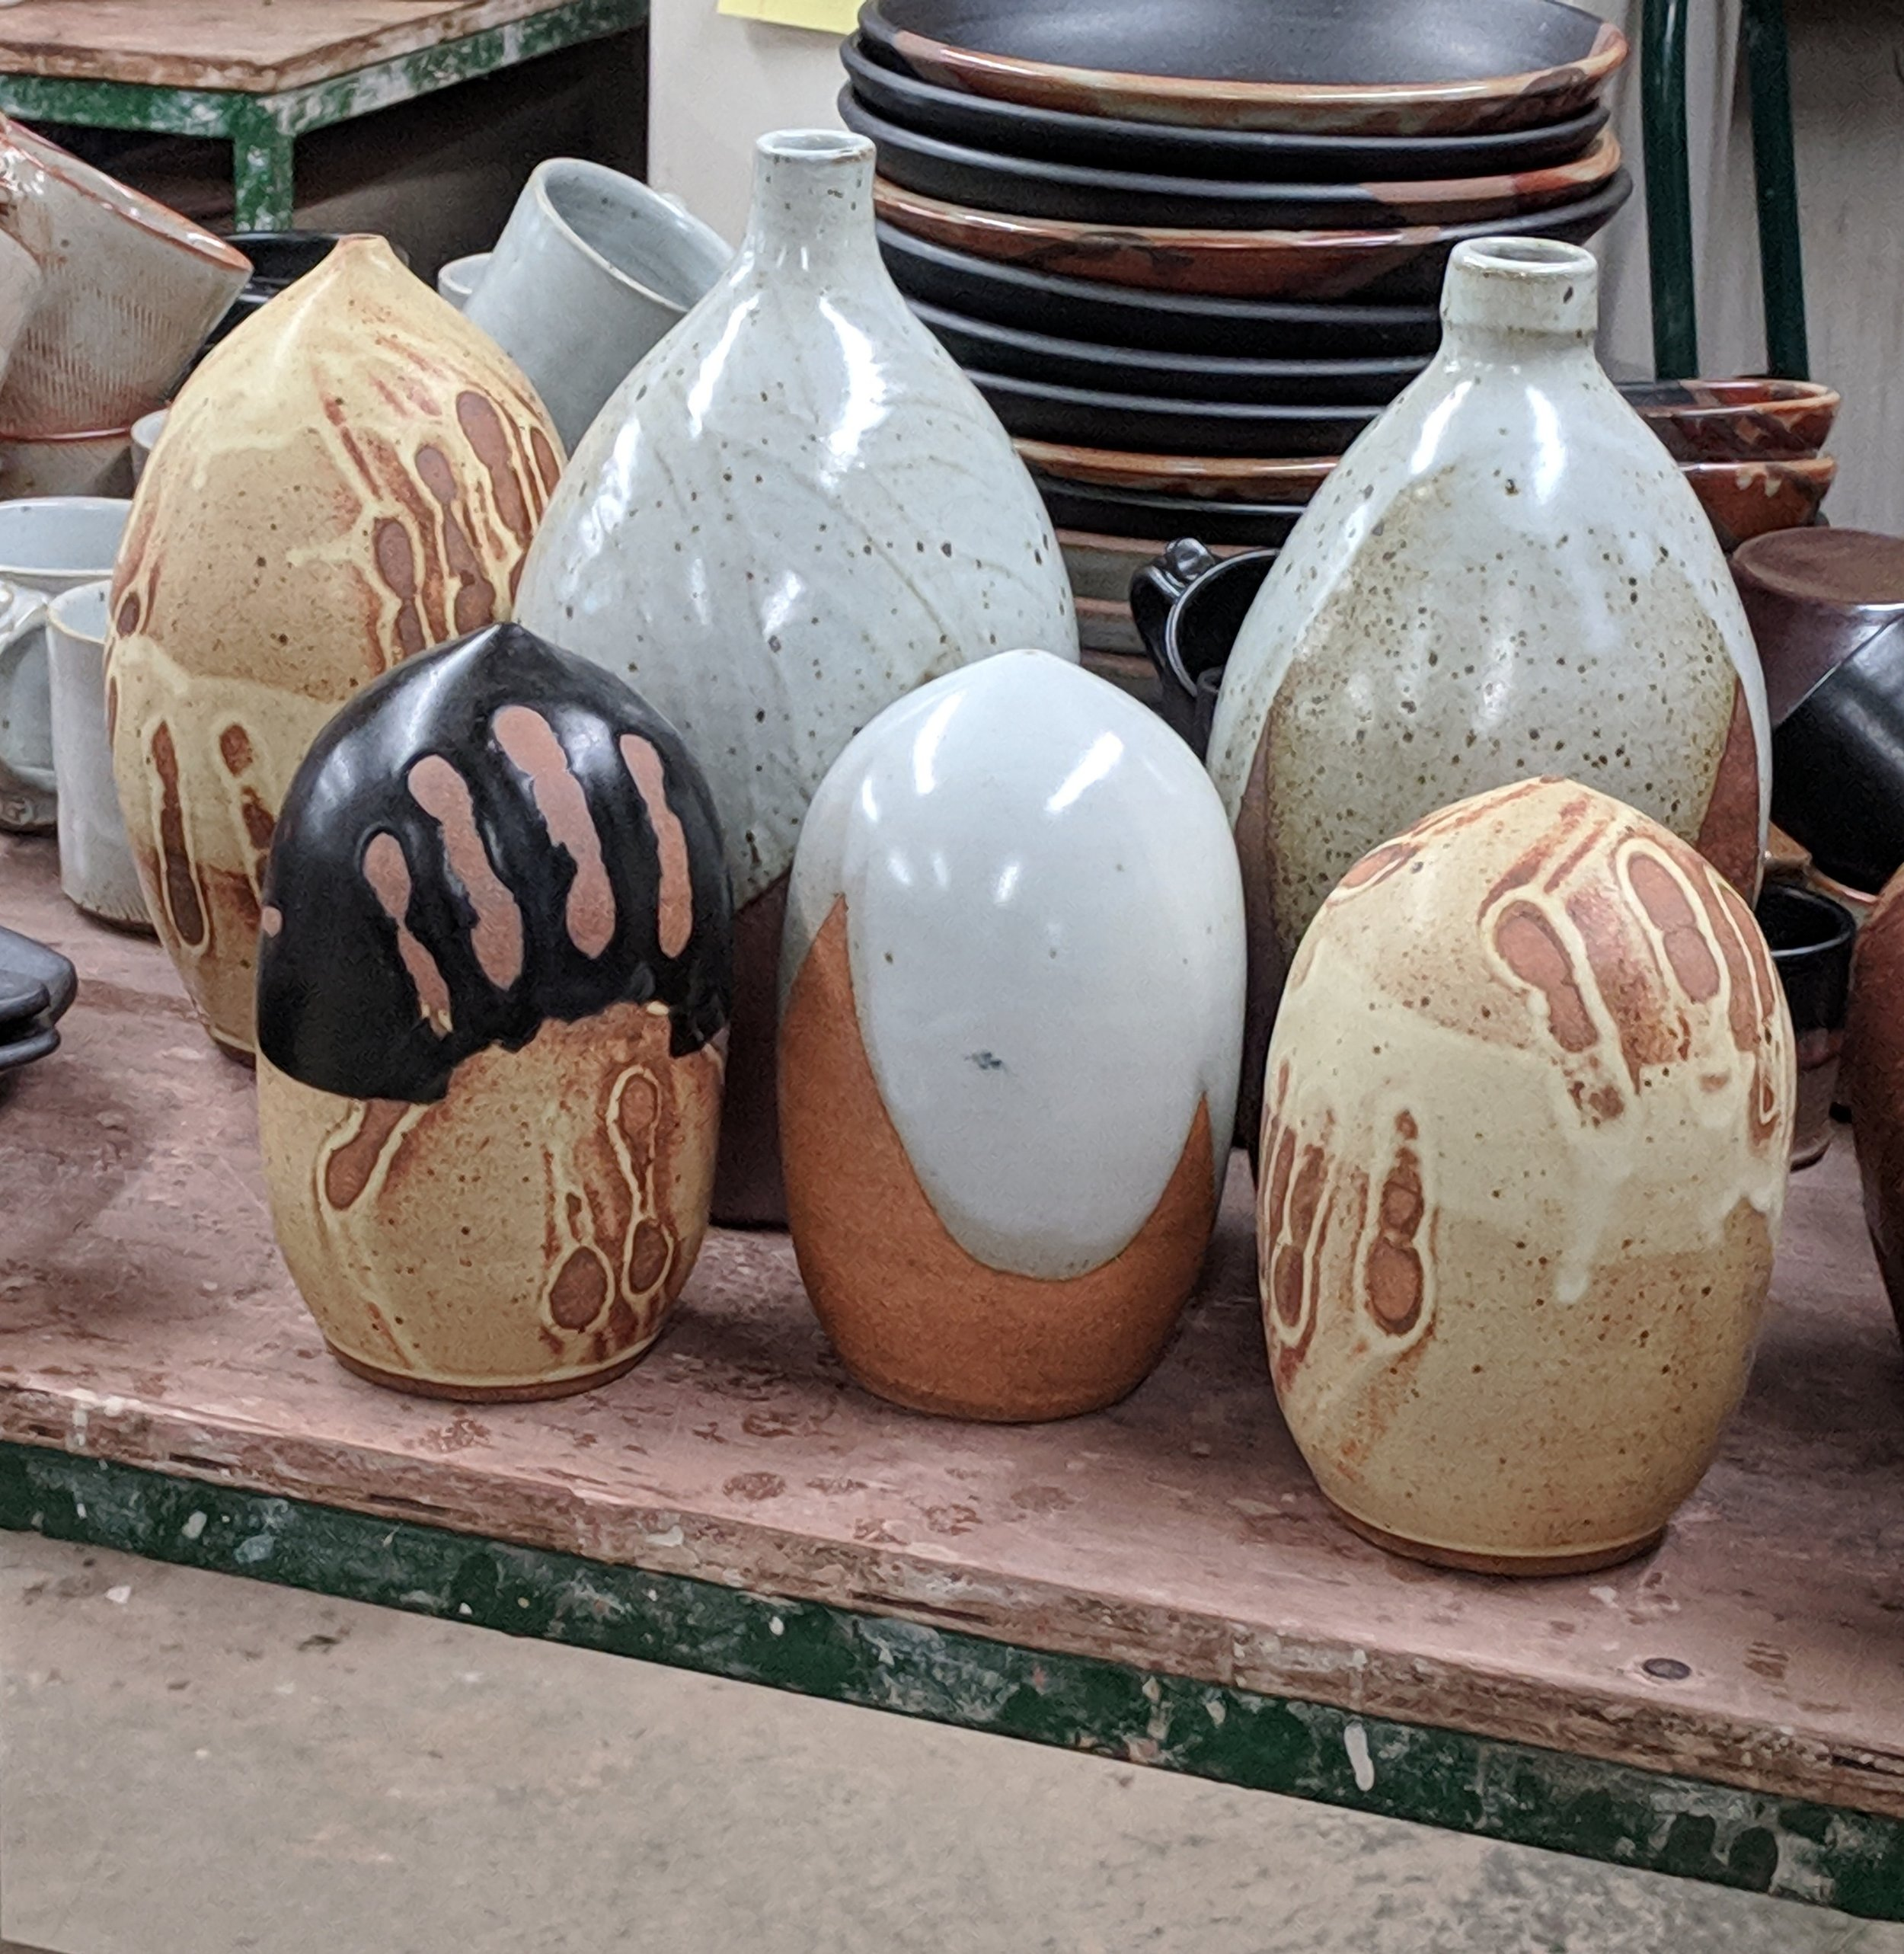 vases and pod shapes